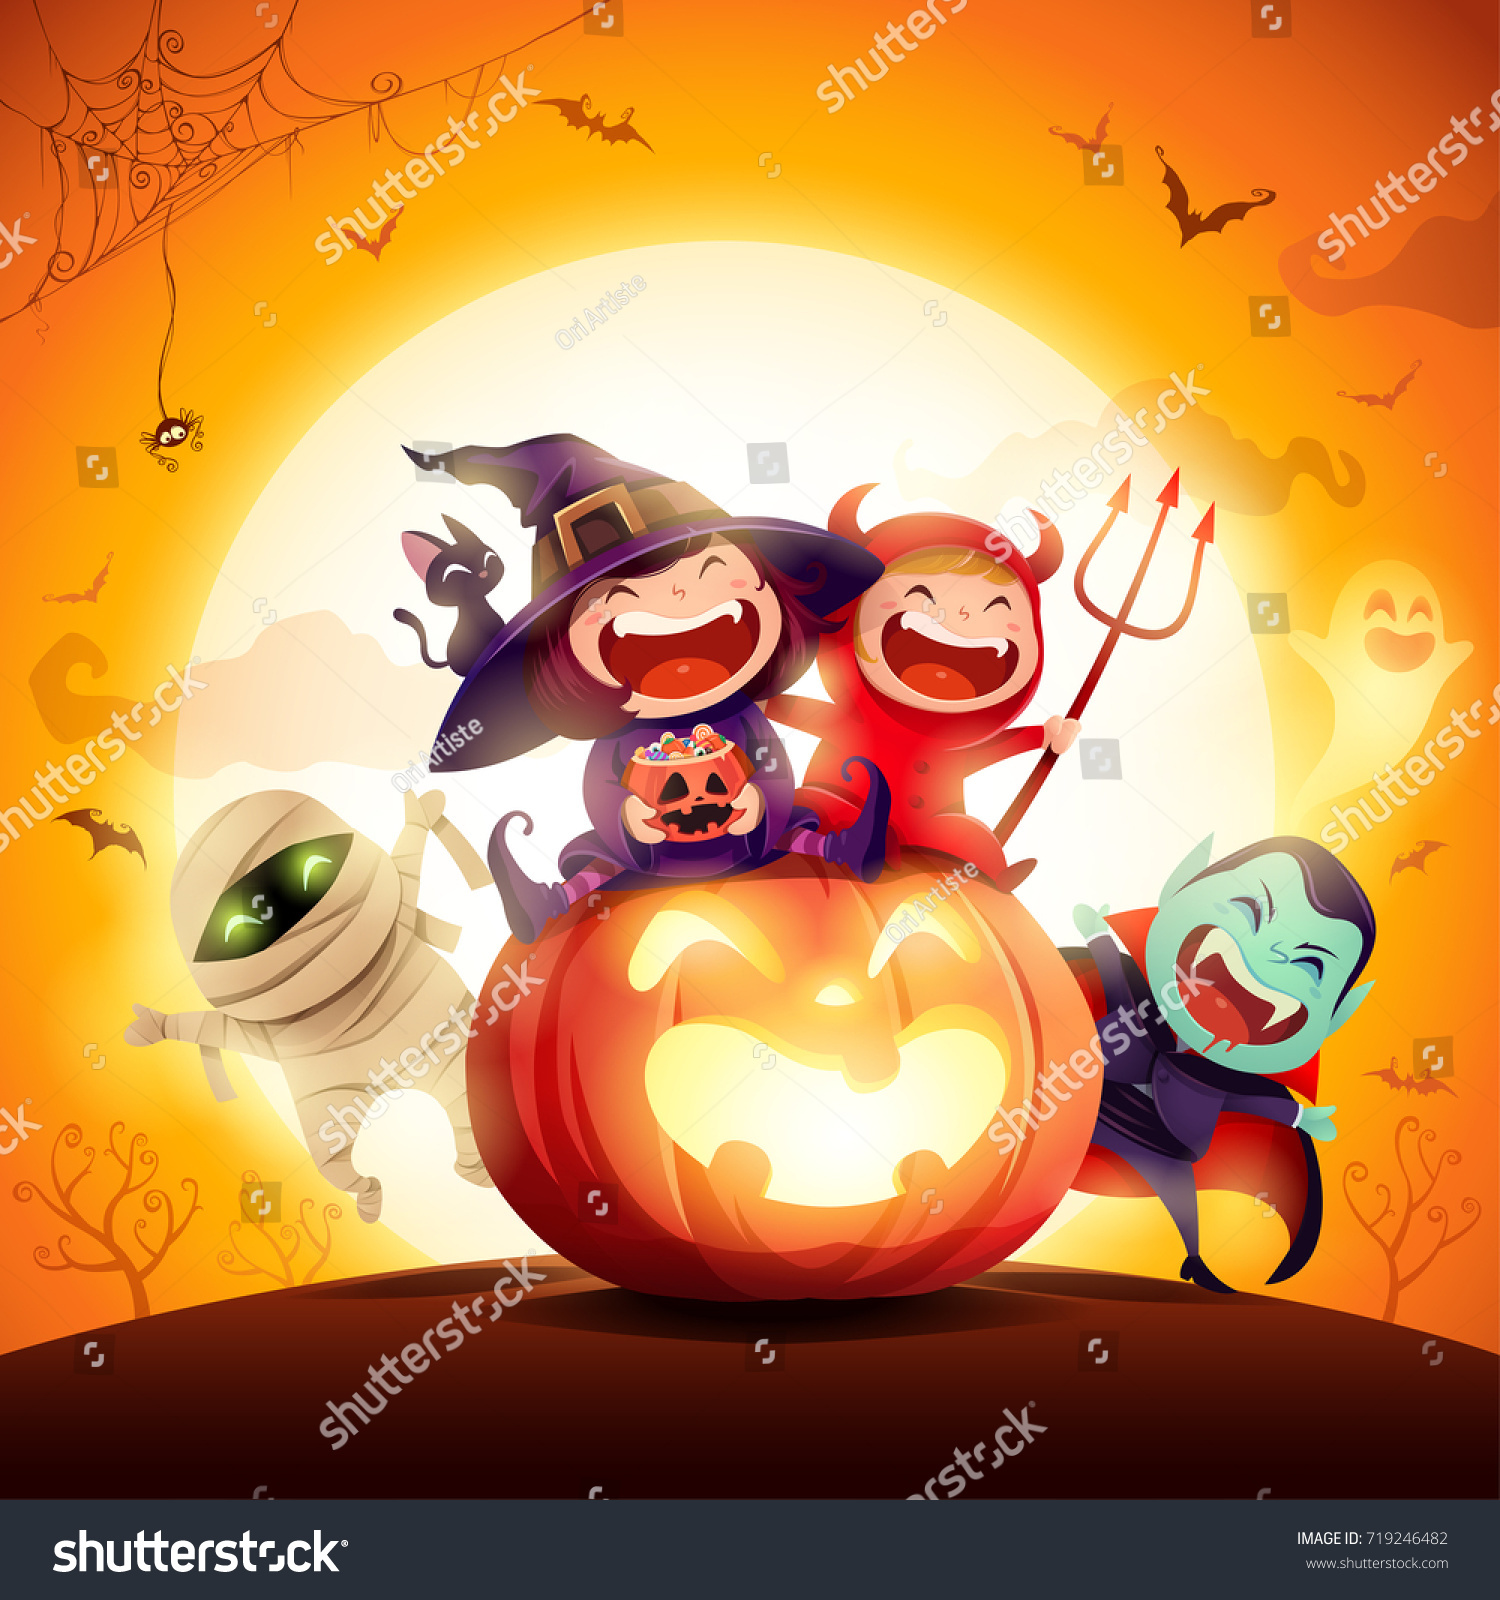 Halloween Kids Costume Party. Group of kids in halloween costume sitting on a giant pumpkin. In the moonlight. Orange background. #719246482